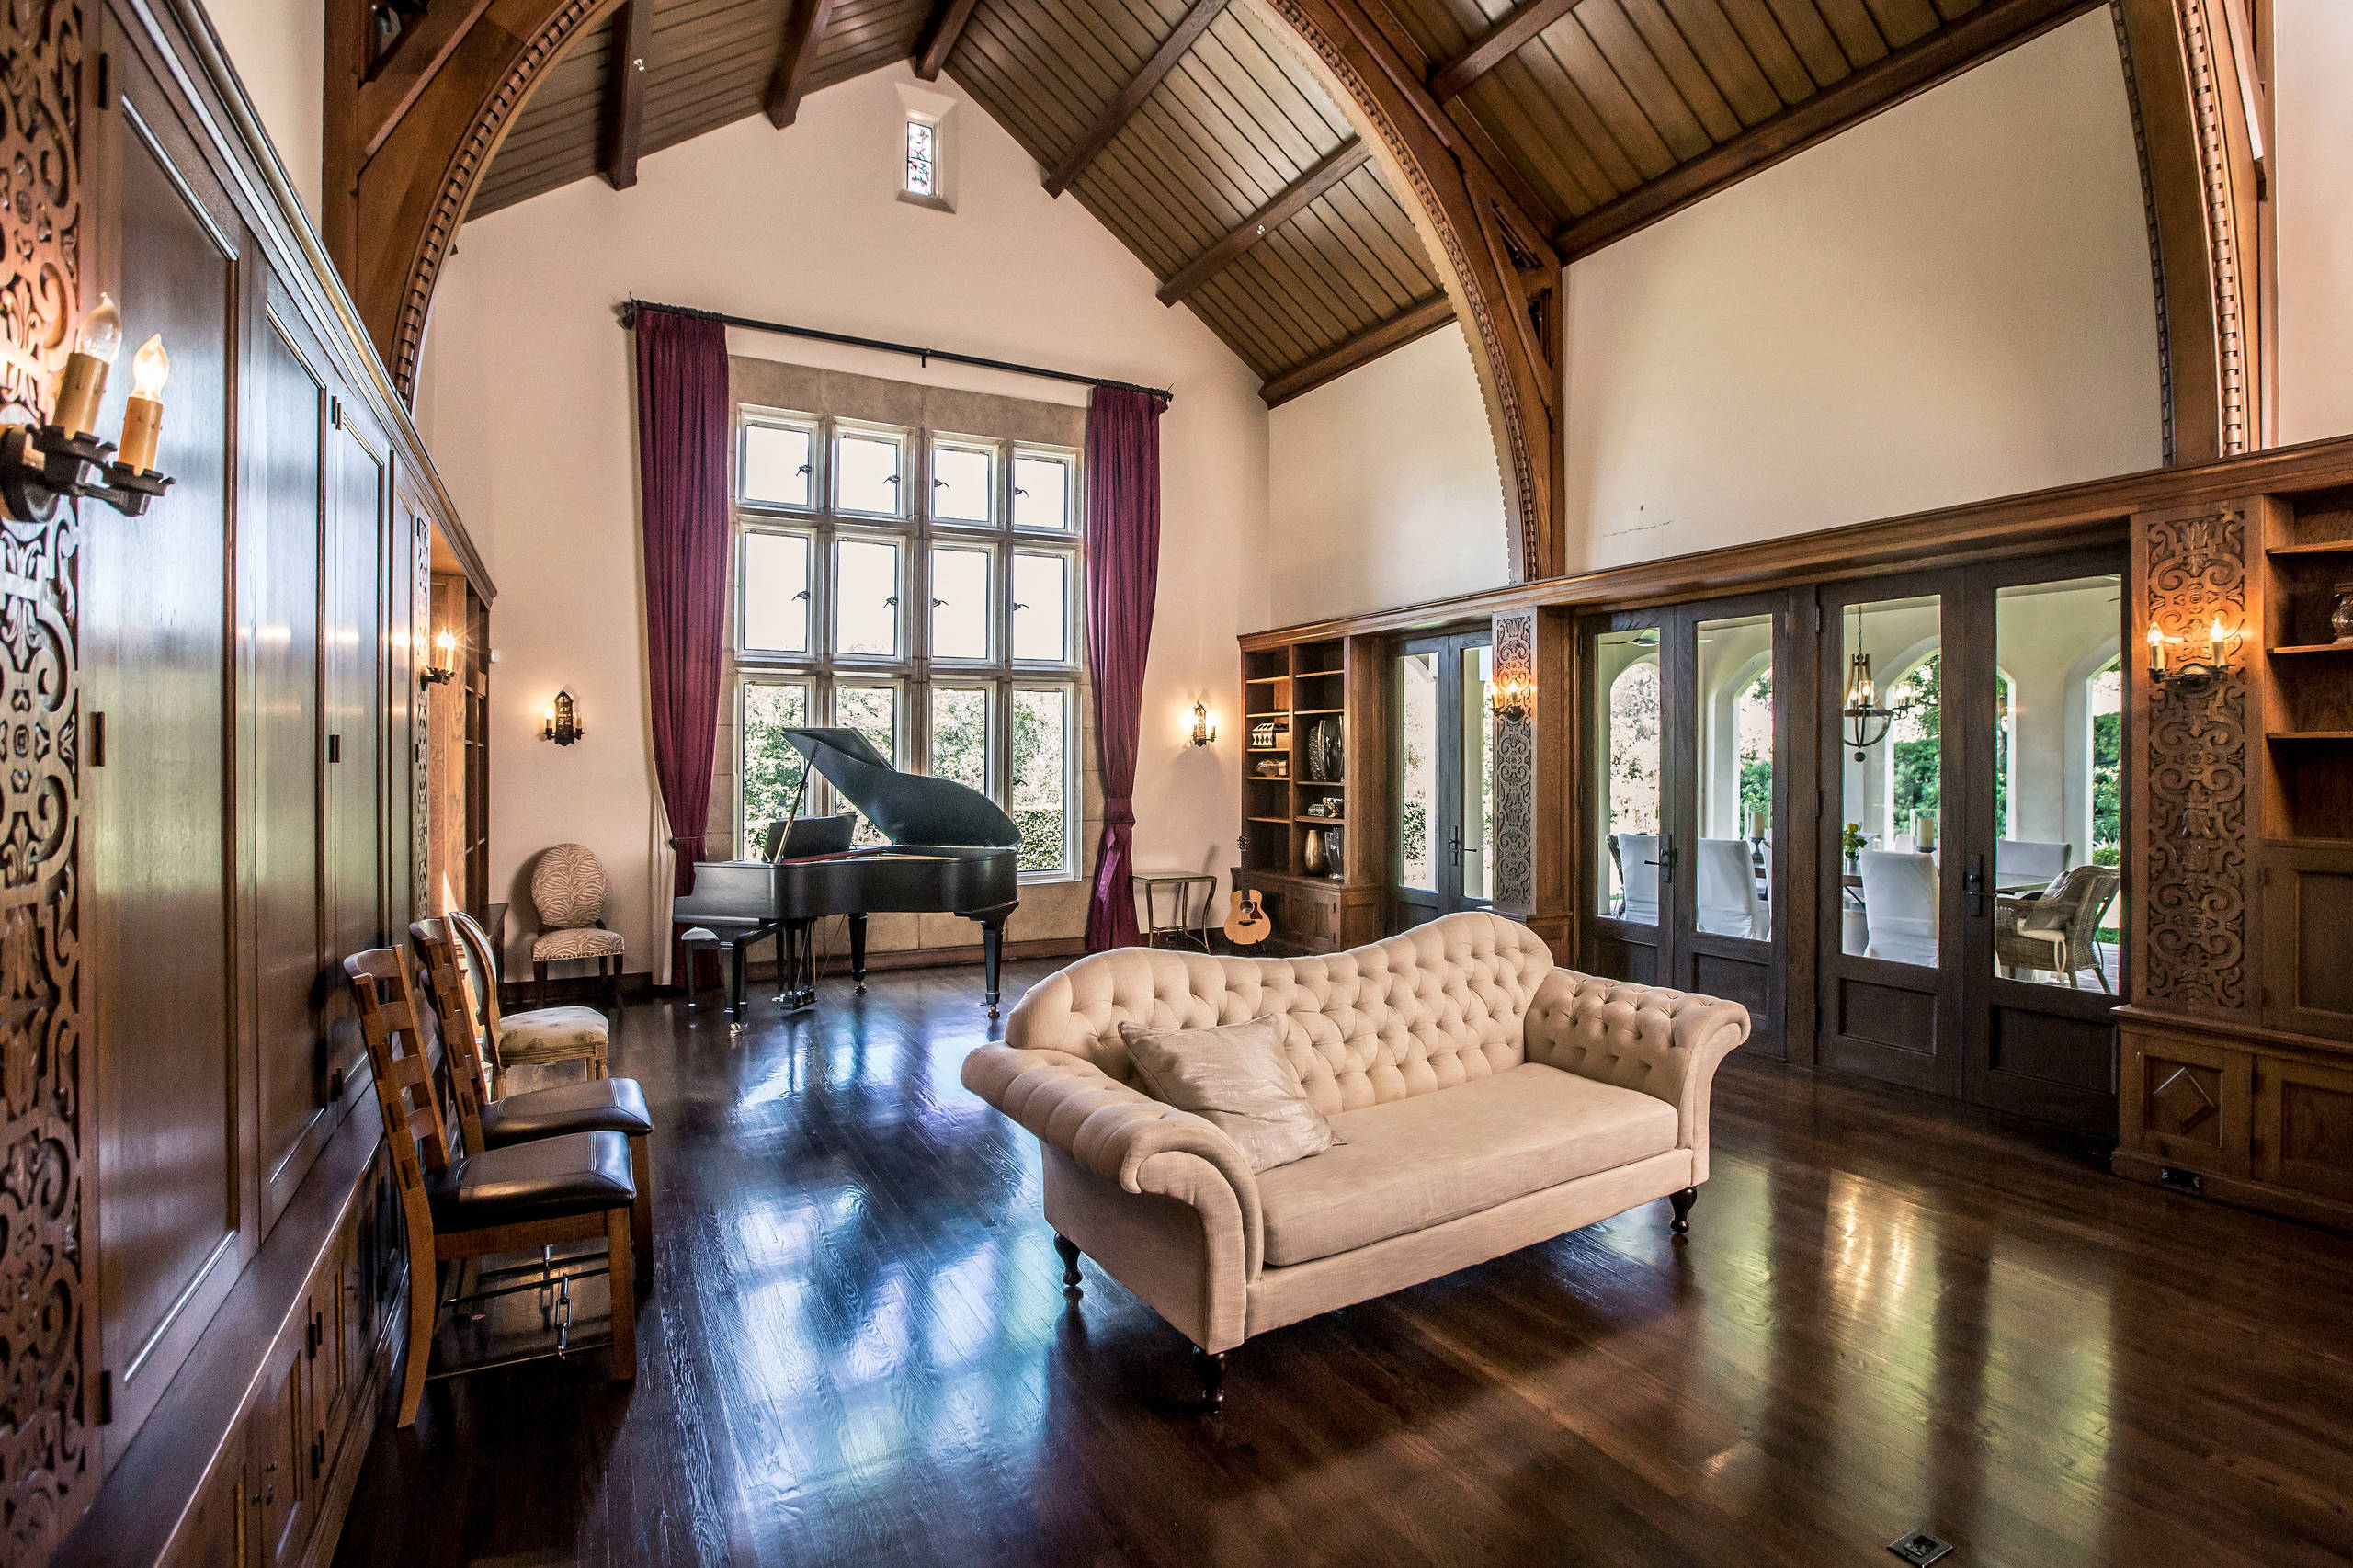 Renovations and Additions to a Historic Tudor Estate in Pasadena